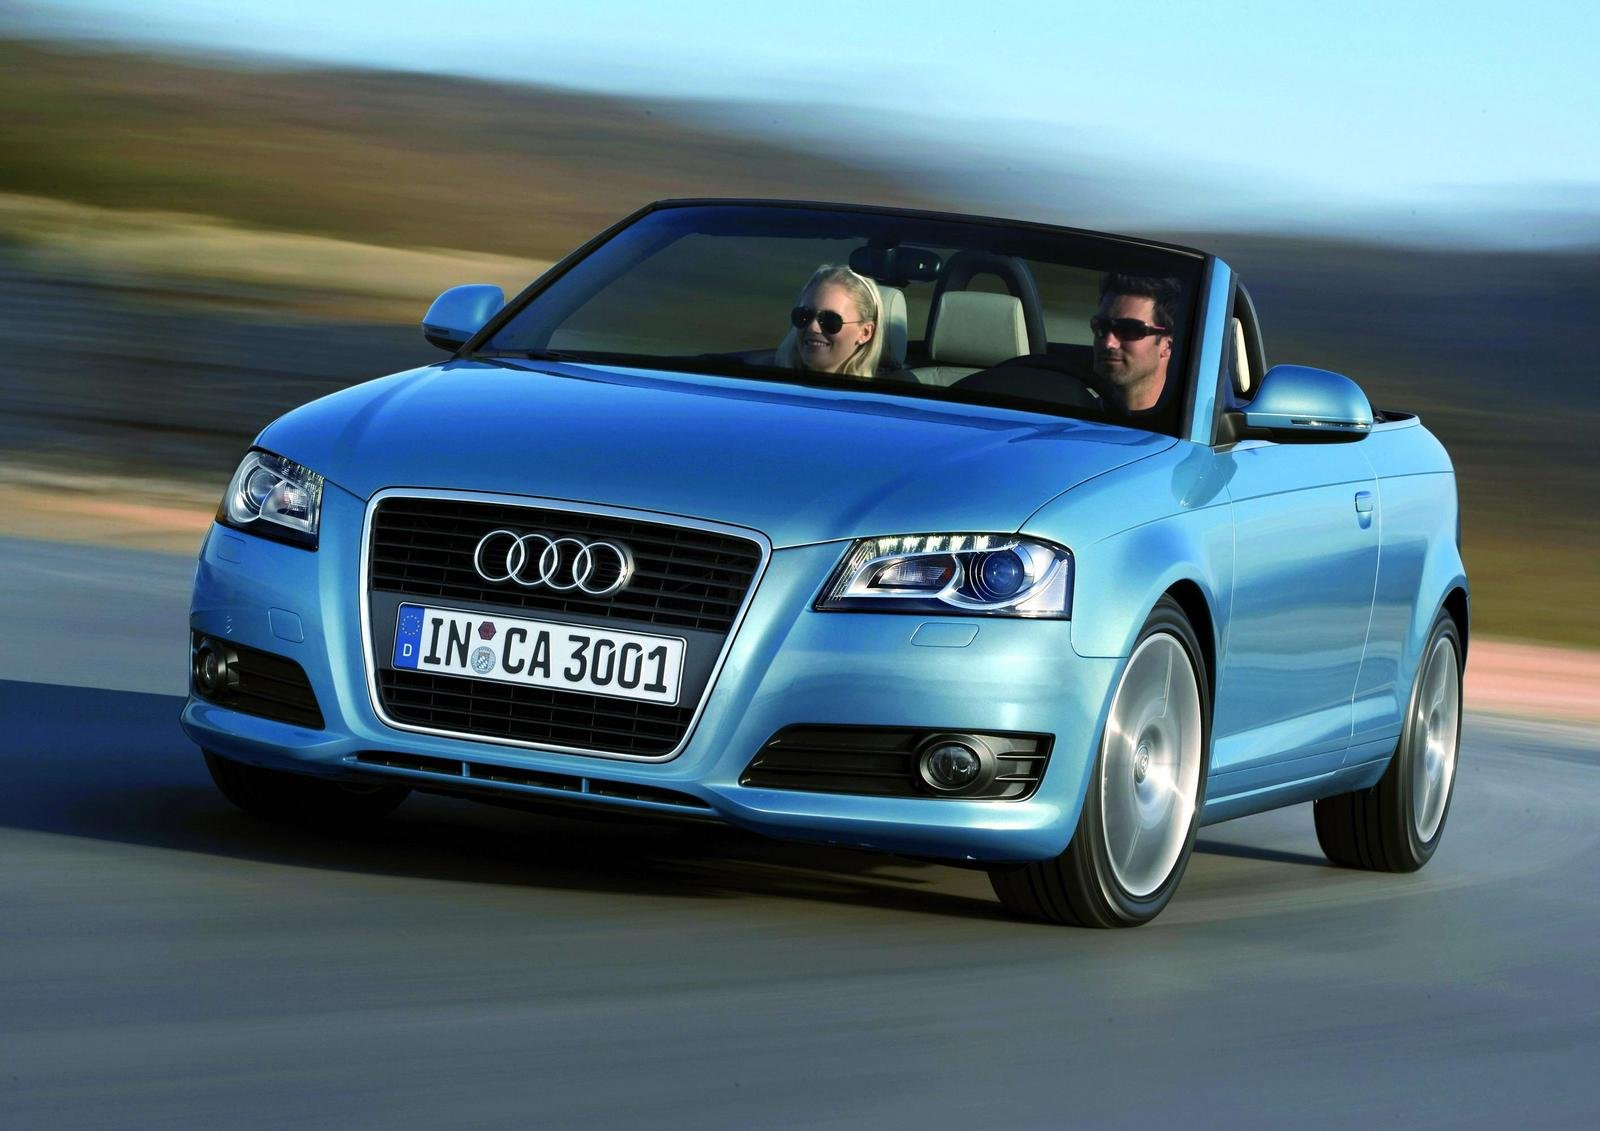 2008 Audi A3 Cabriolet Review - Top Speed